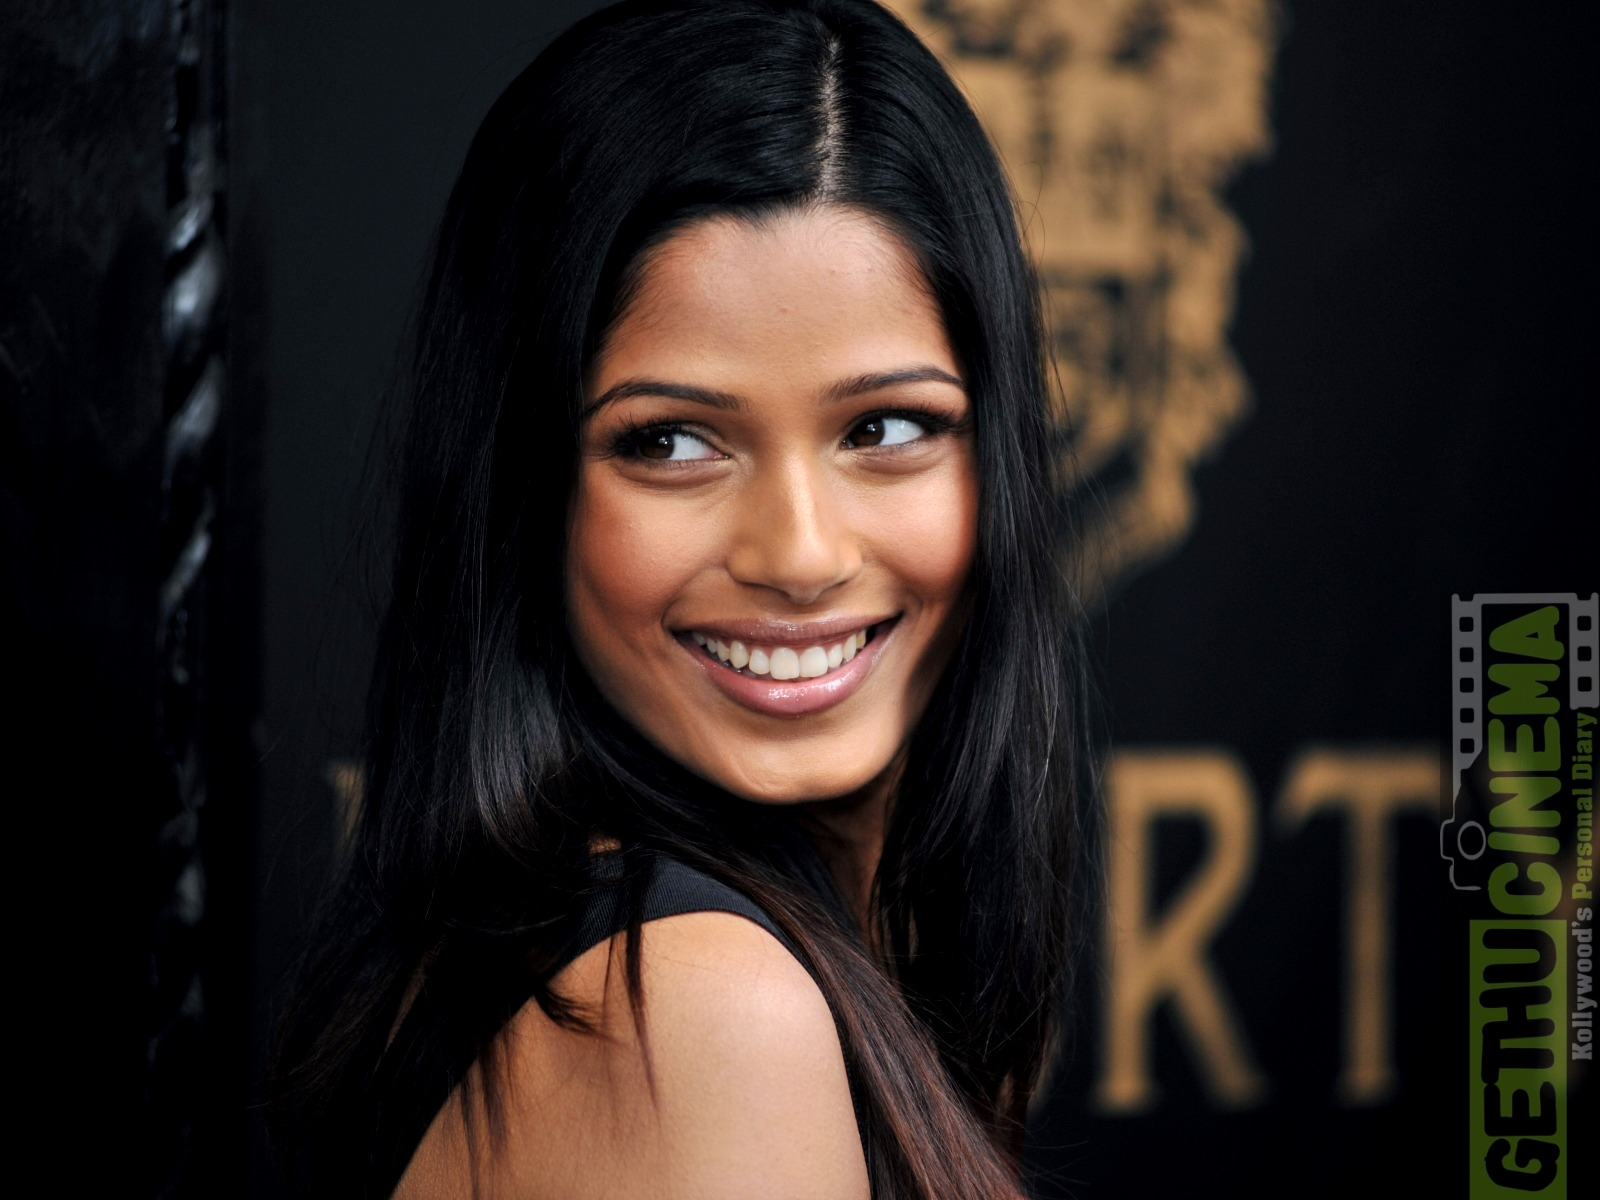 Actress Freida Pinto gallery - Gethu Cinema фрида пинто